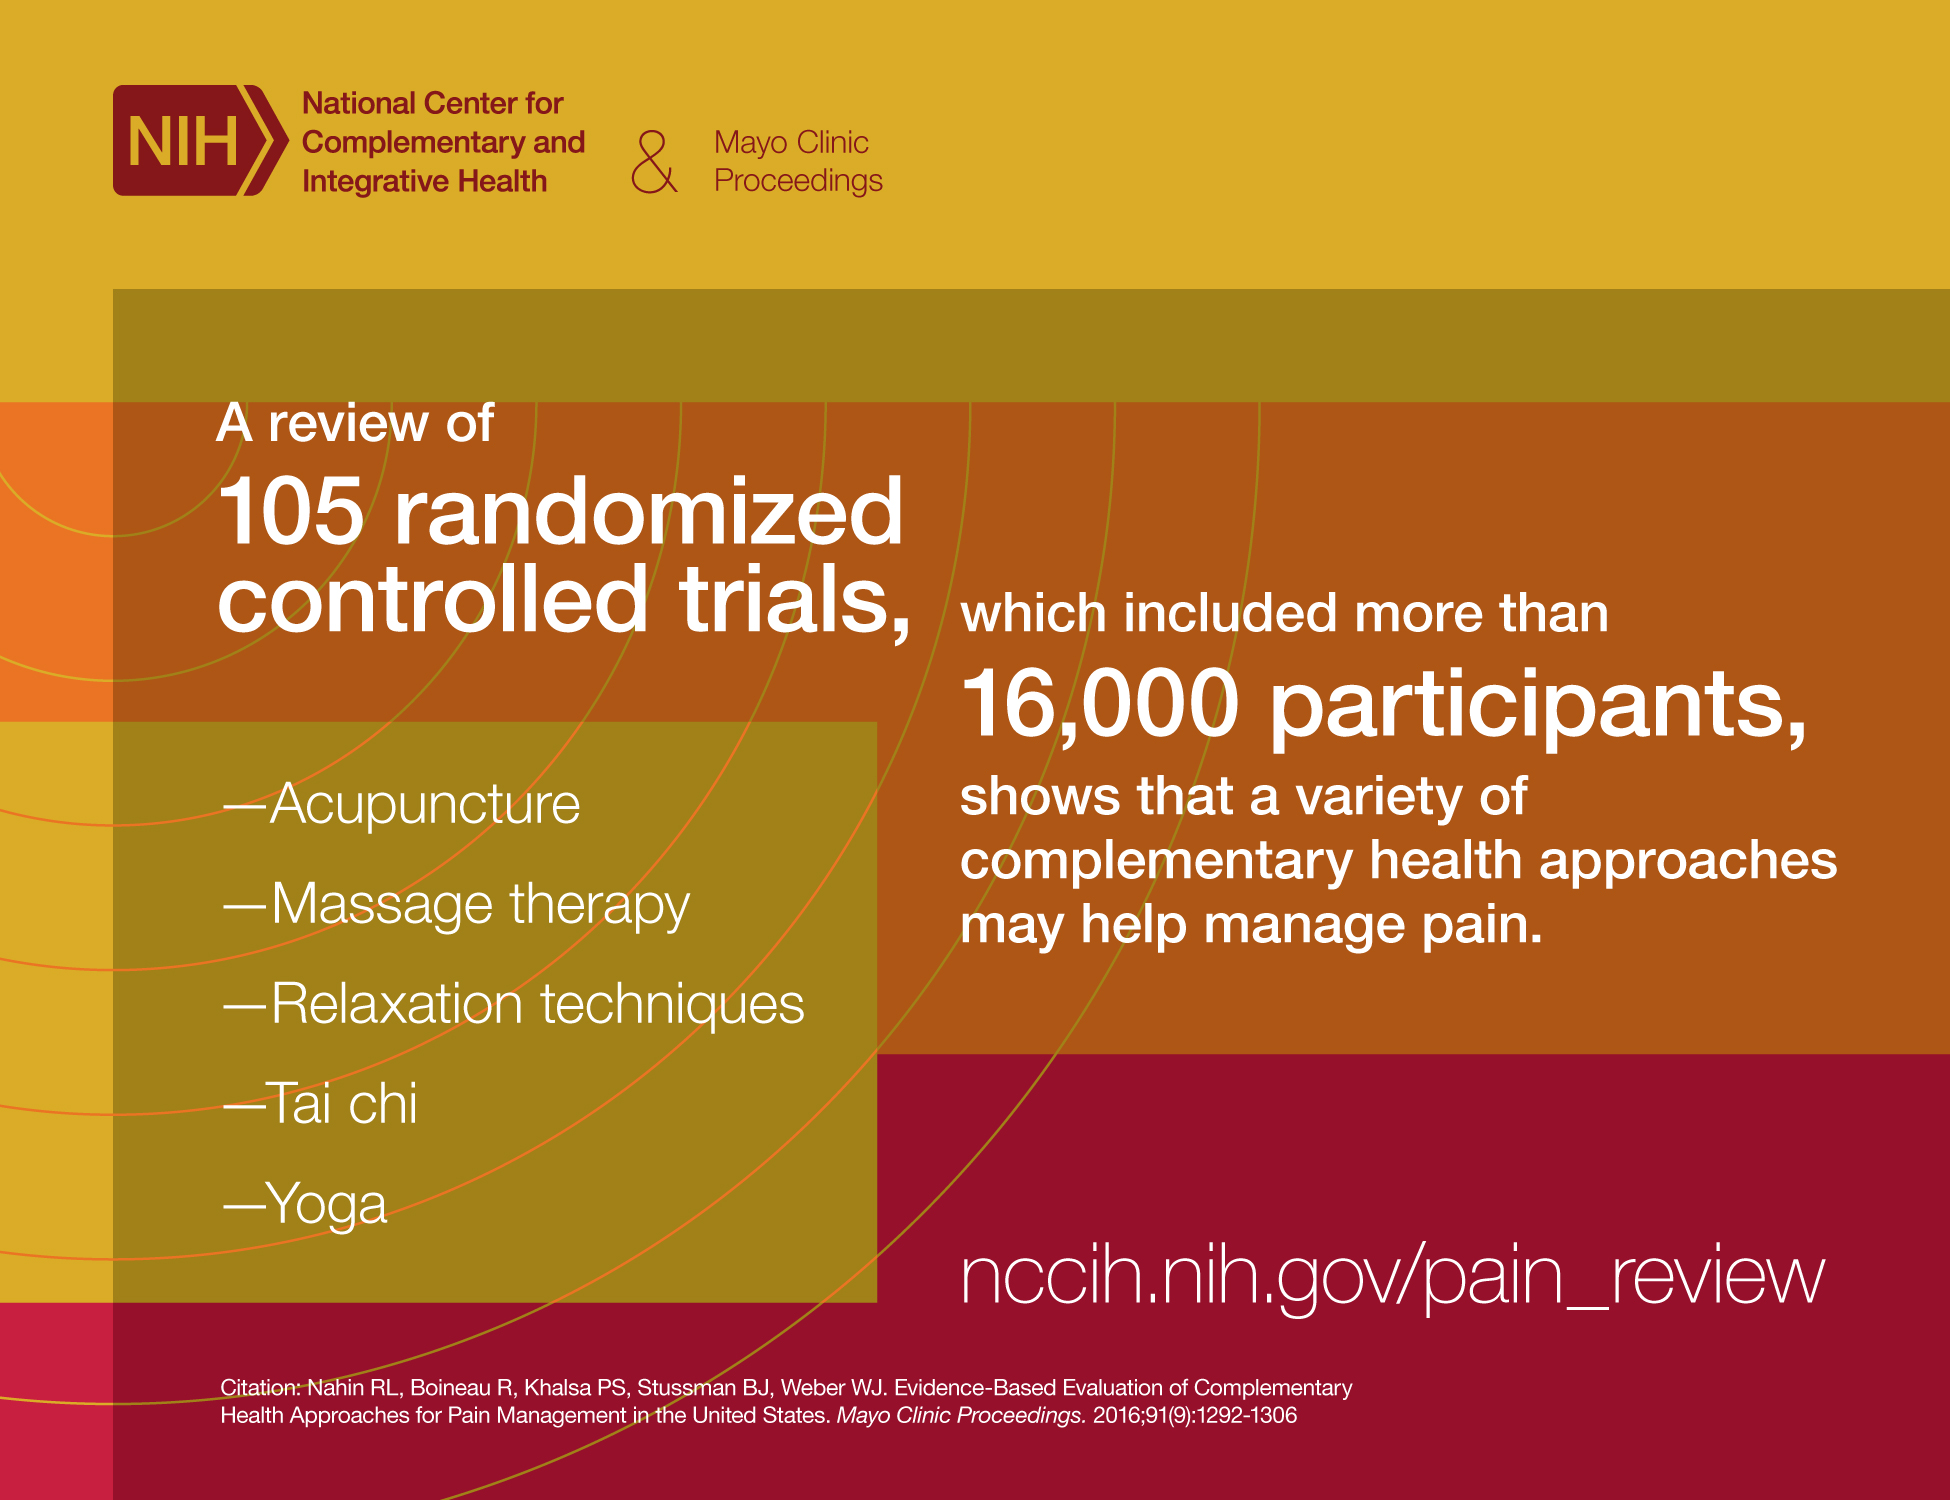 A review of 105 randomized controlled trials, which included more than 16,000 participants, shows that a variety of complementary health approaches may help manage pain. • Acupuncture• Massage therapy• Relaxation techniques• Tai chi• YogaCitation: Nahin RL, Boineau R, Khalsa PS, StussmanBJ, Weber WJ. Evidence-based evaluation of complementary health approaches for pain management in the United States. Mayo Clin Proc. September 2016;91(9):1292-1306.